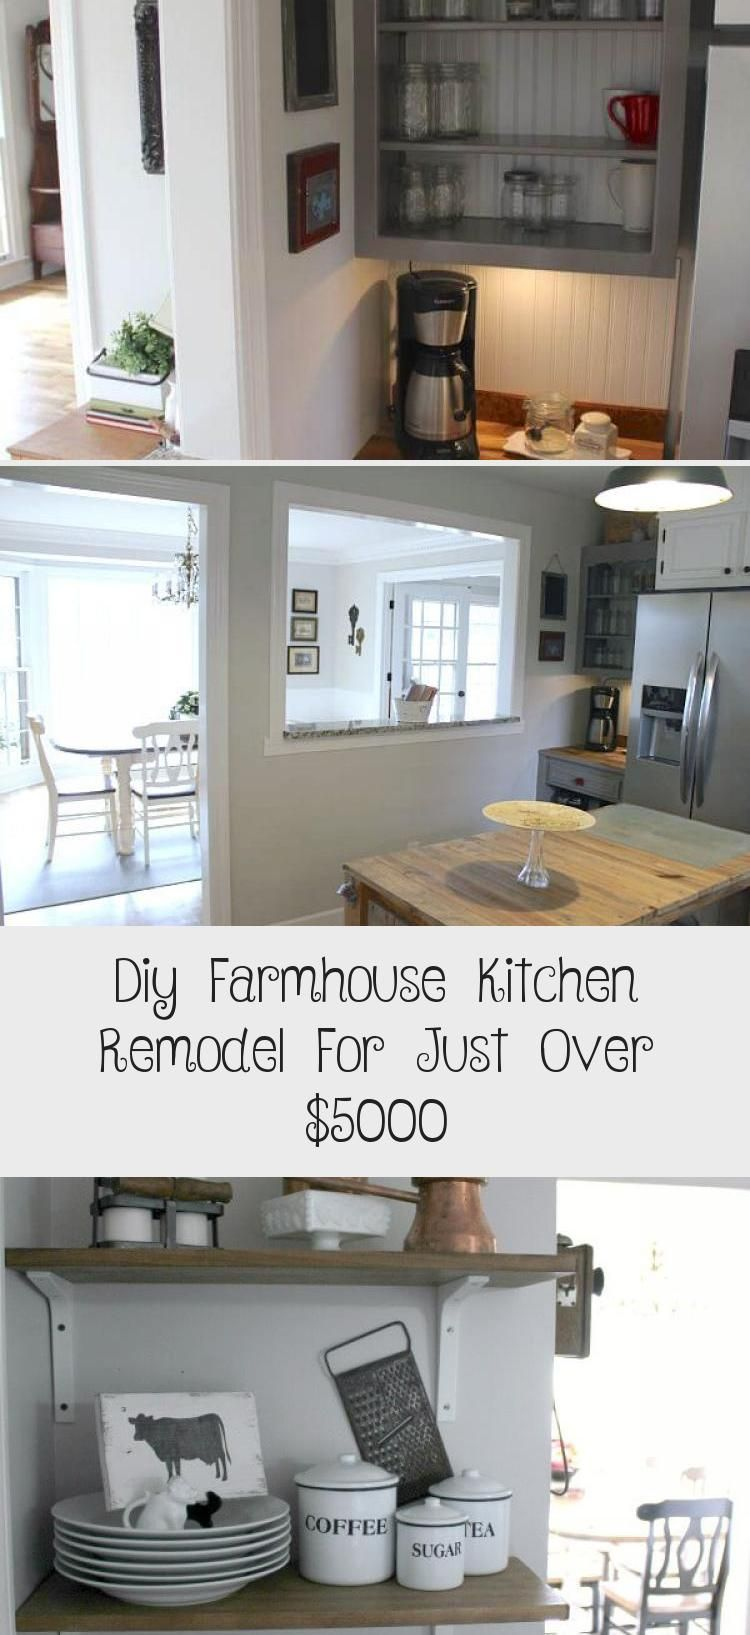 diy farmhouse kitchen remodel for just over 5000 kitchen decor in 2020 farmhouse kitchen on kitchen remodel under 5000 id=81058